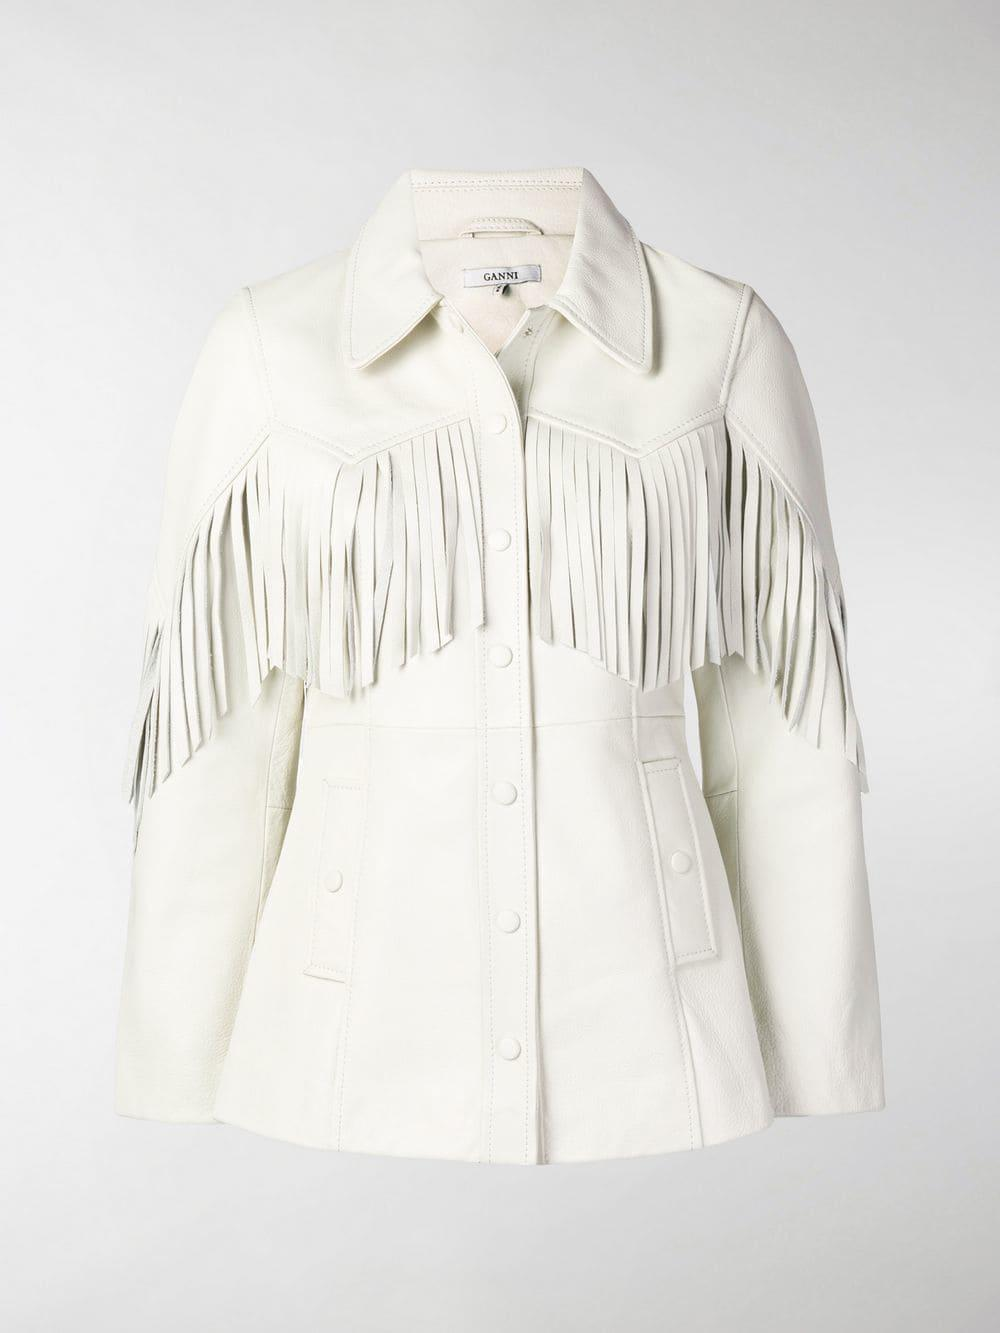 6b394dd1c35 Lyst - Ganni Fringed Leather Jacket in White - Save 19%